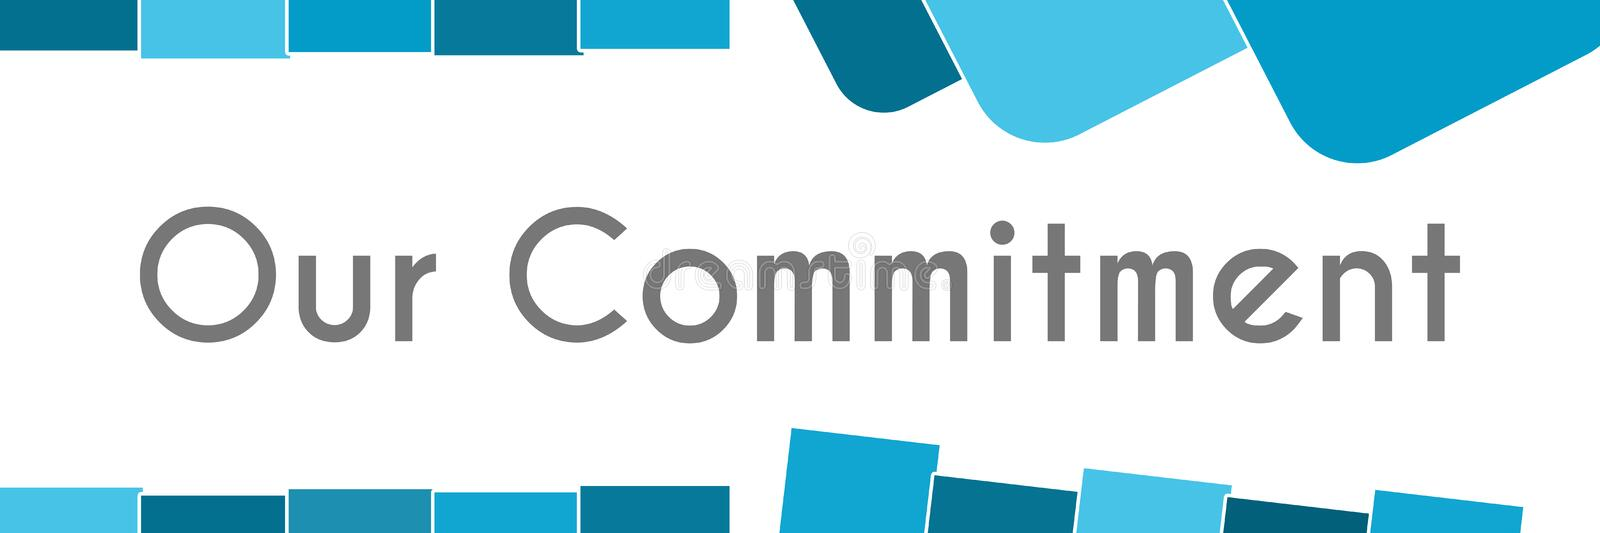 Our Commitment Blue Abstract Background royalty free illustration